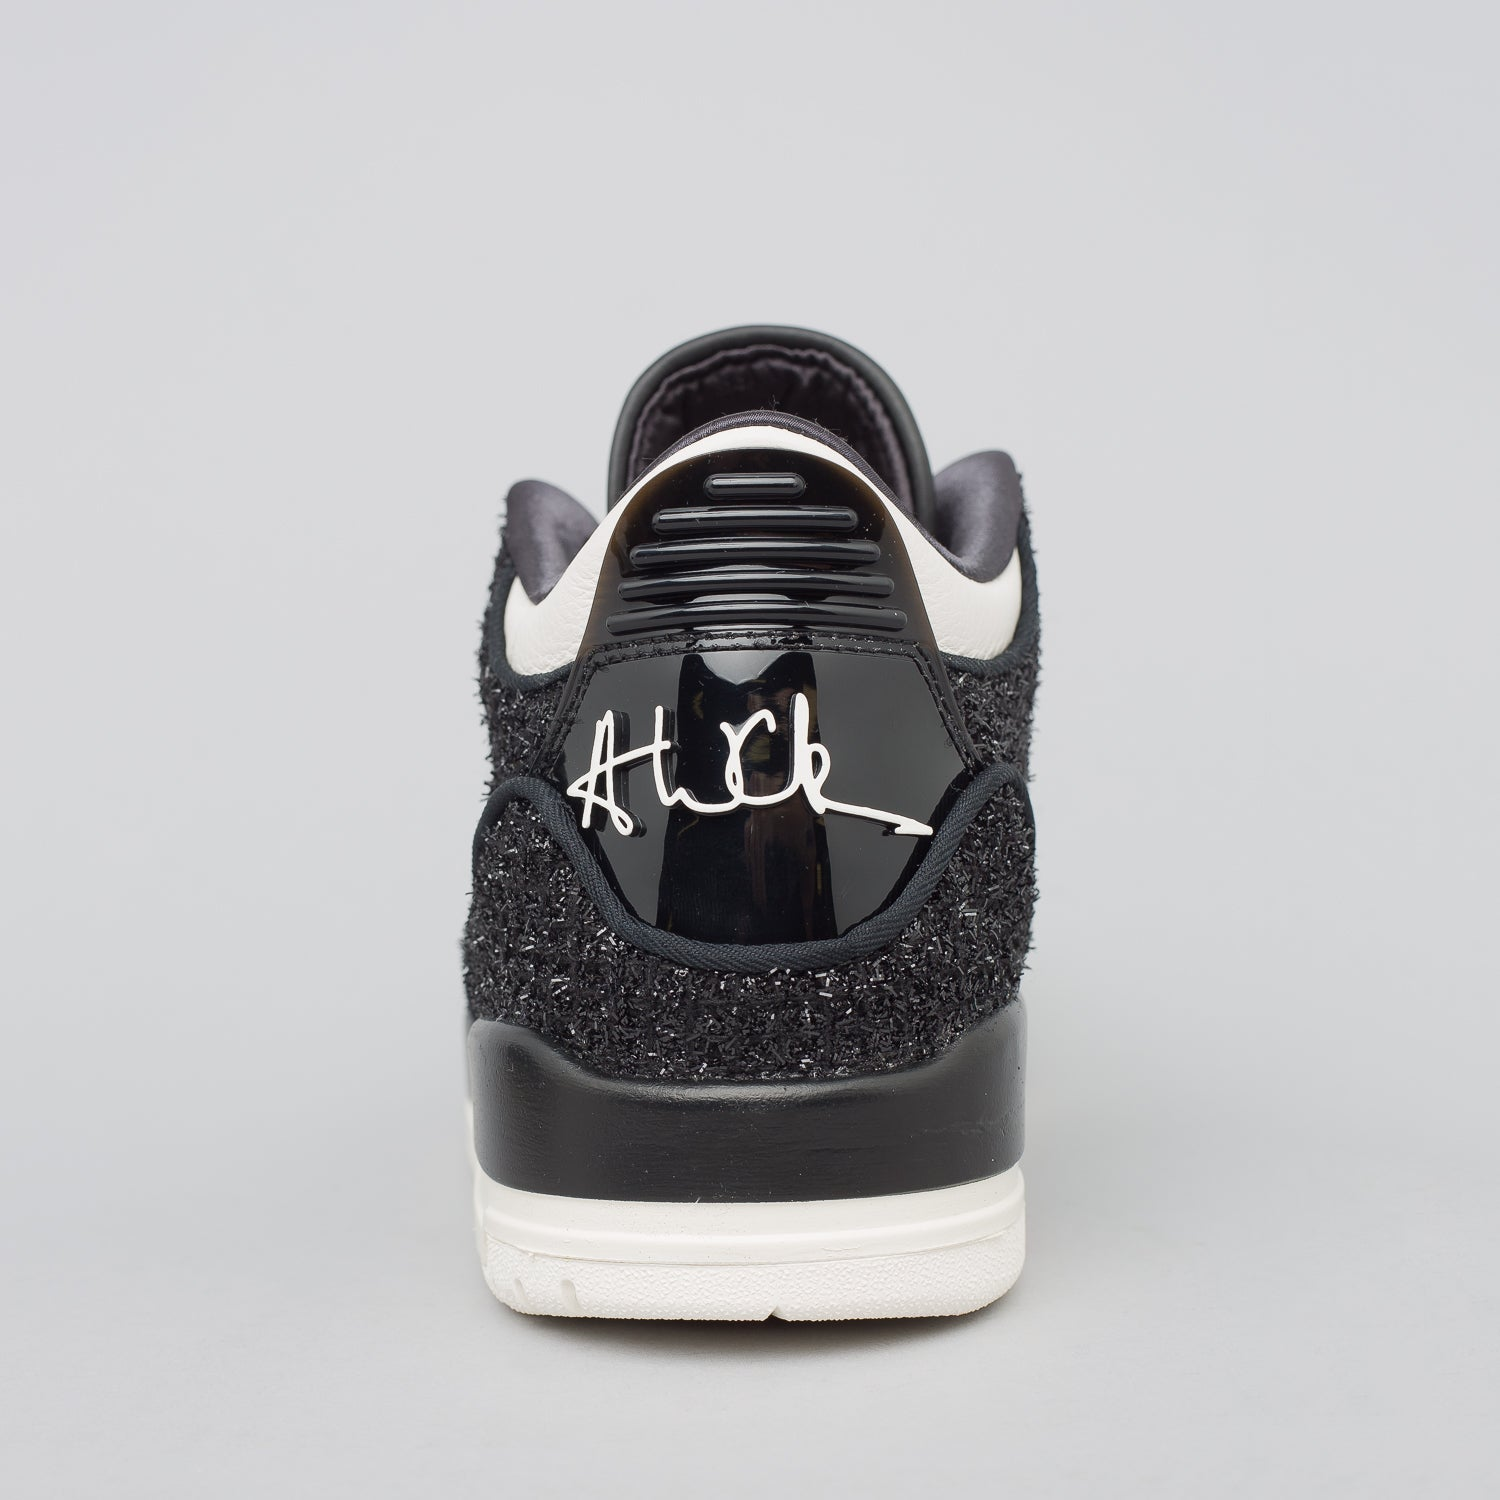 x Vogue Women's Air Jordan 3 Retro in Black